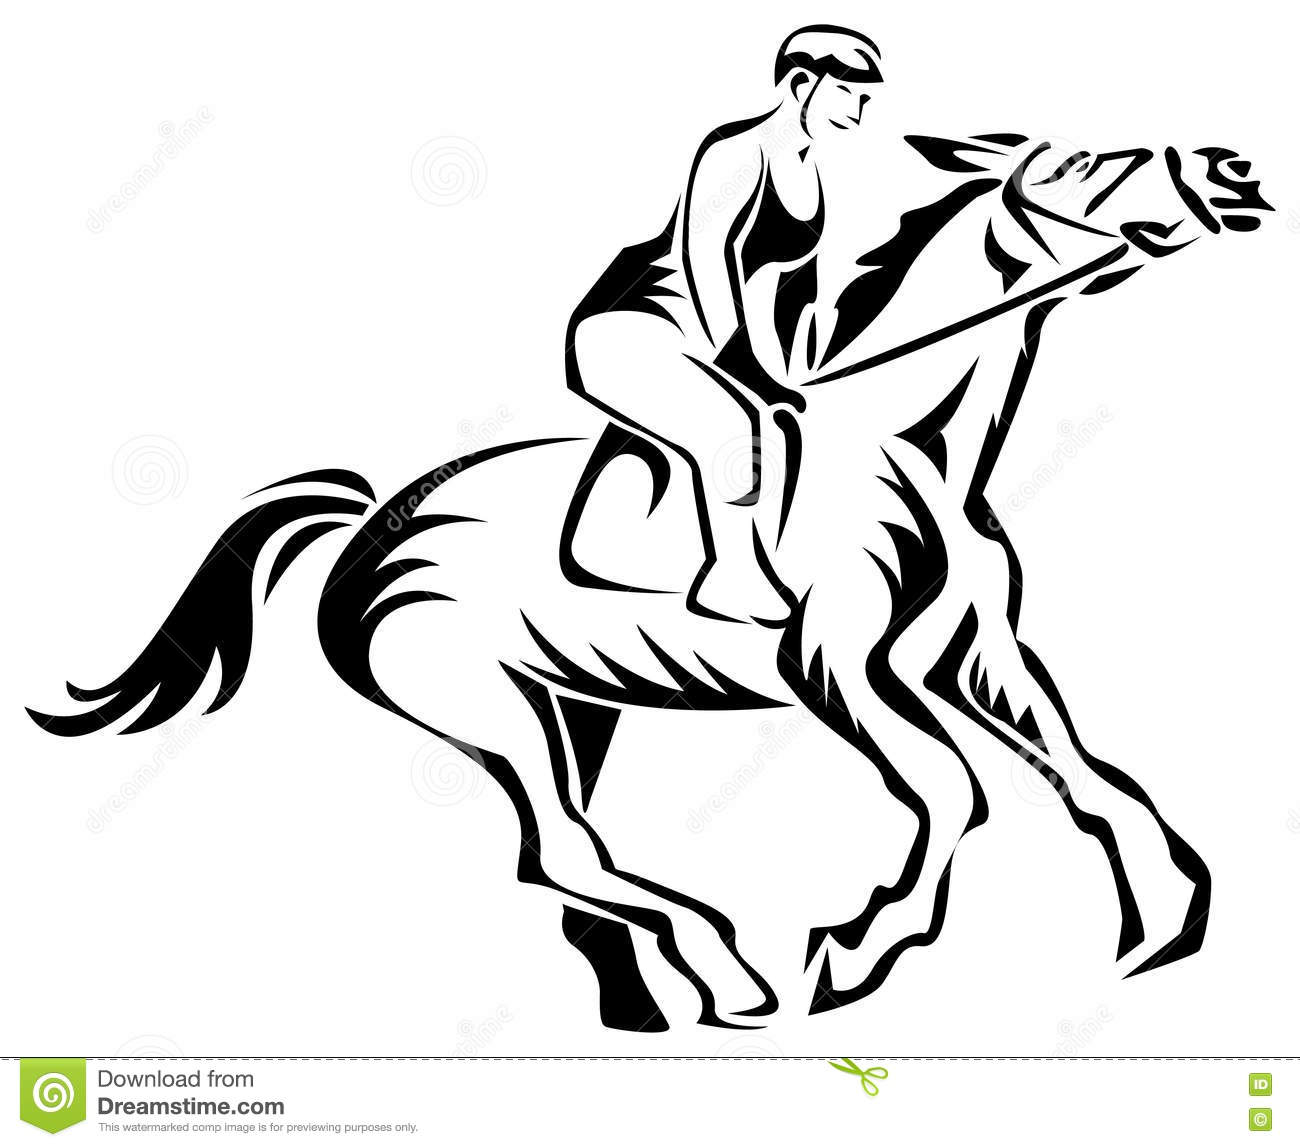 A Woman Horse Rider Stock Vector Illustration Of Action 80963455